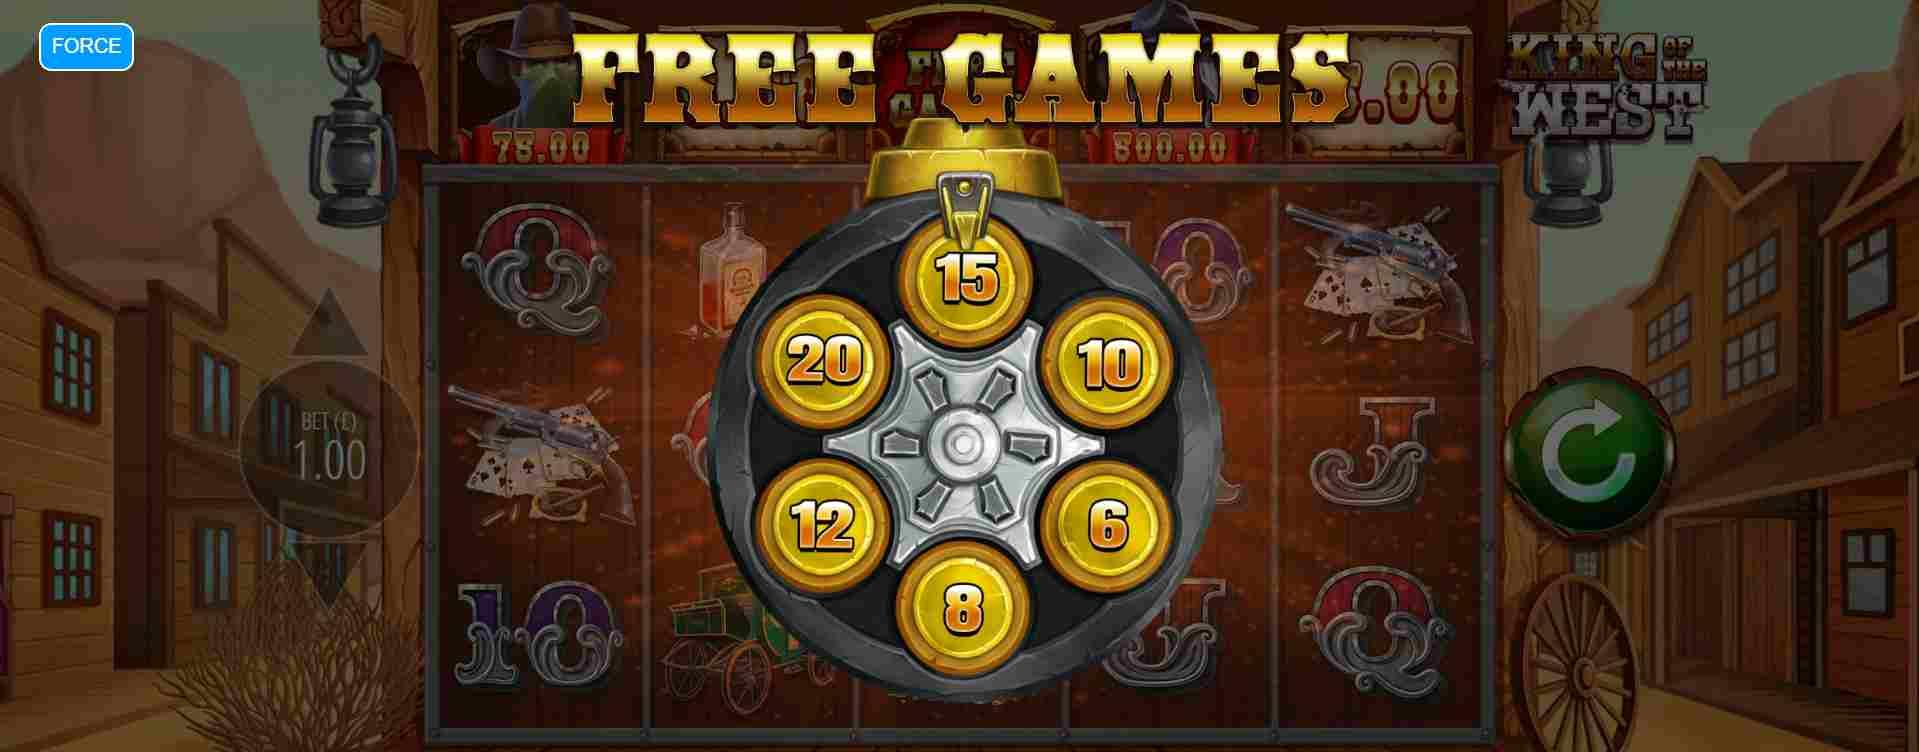 King of the West Free Spins